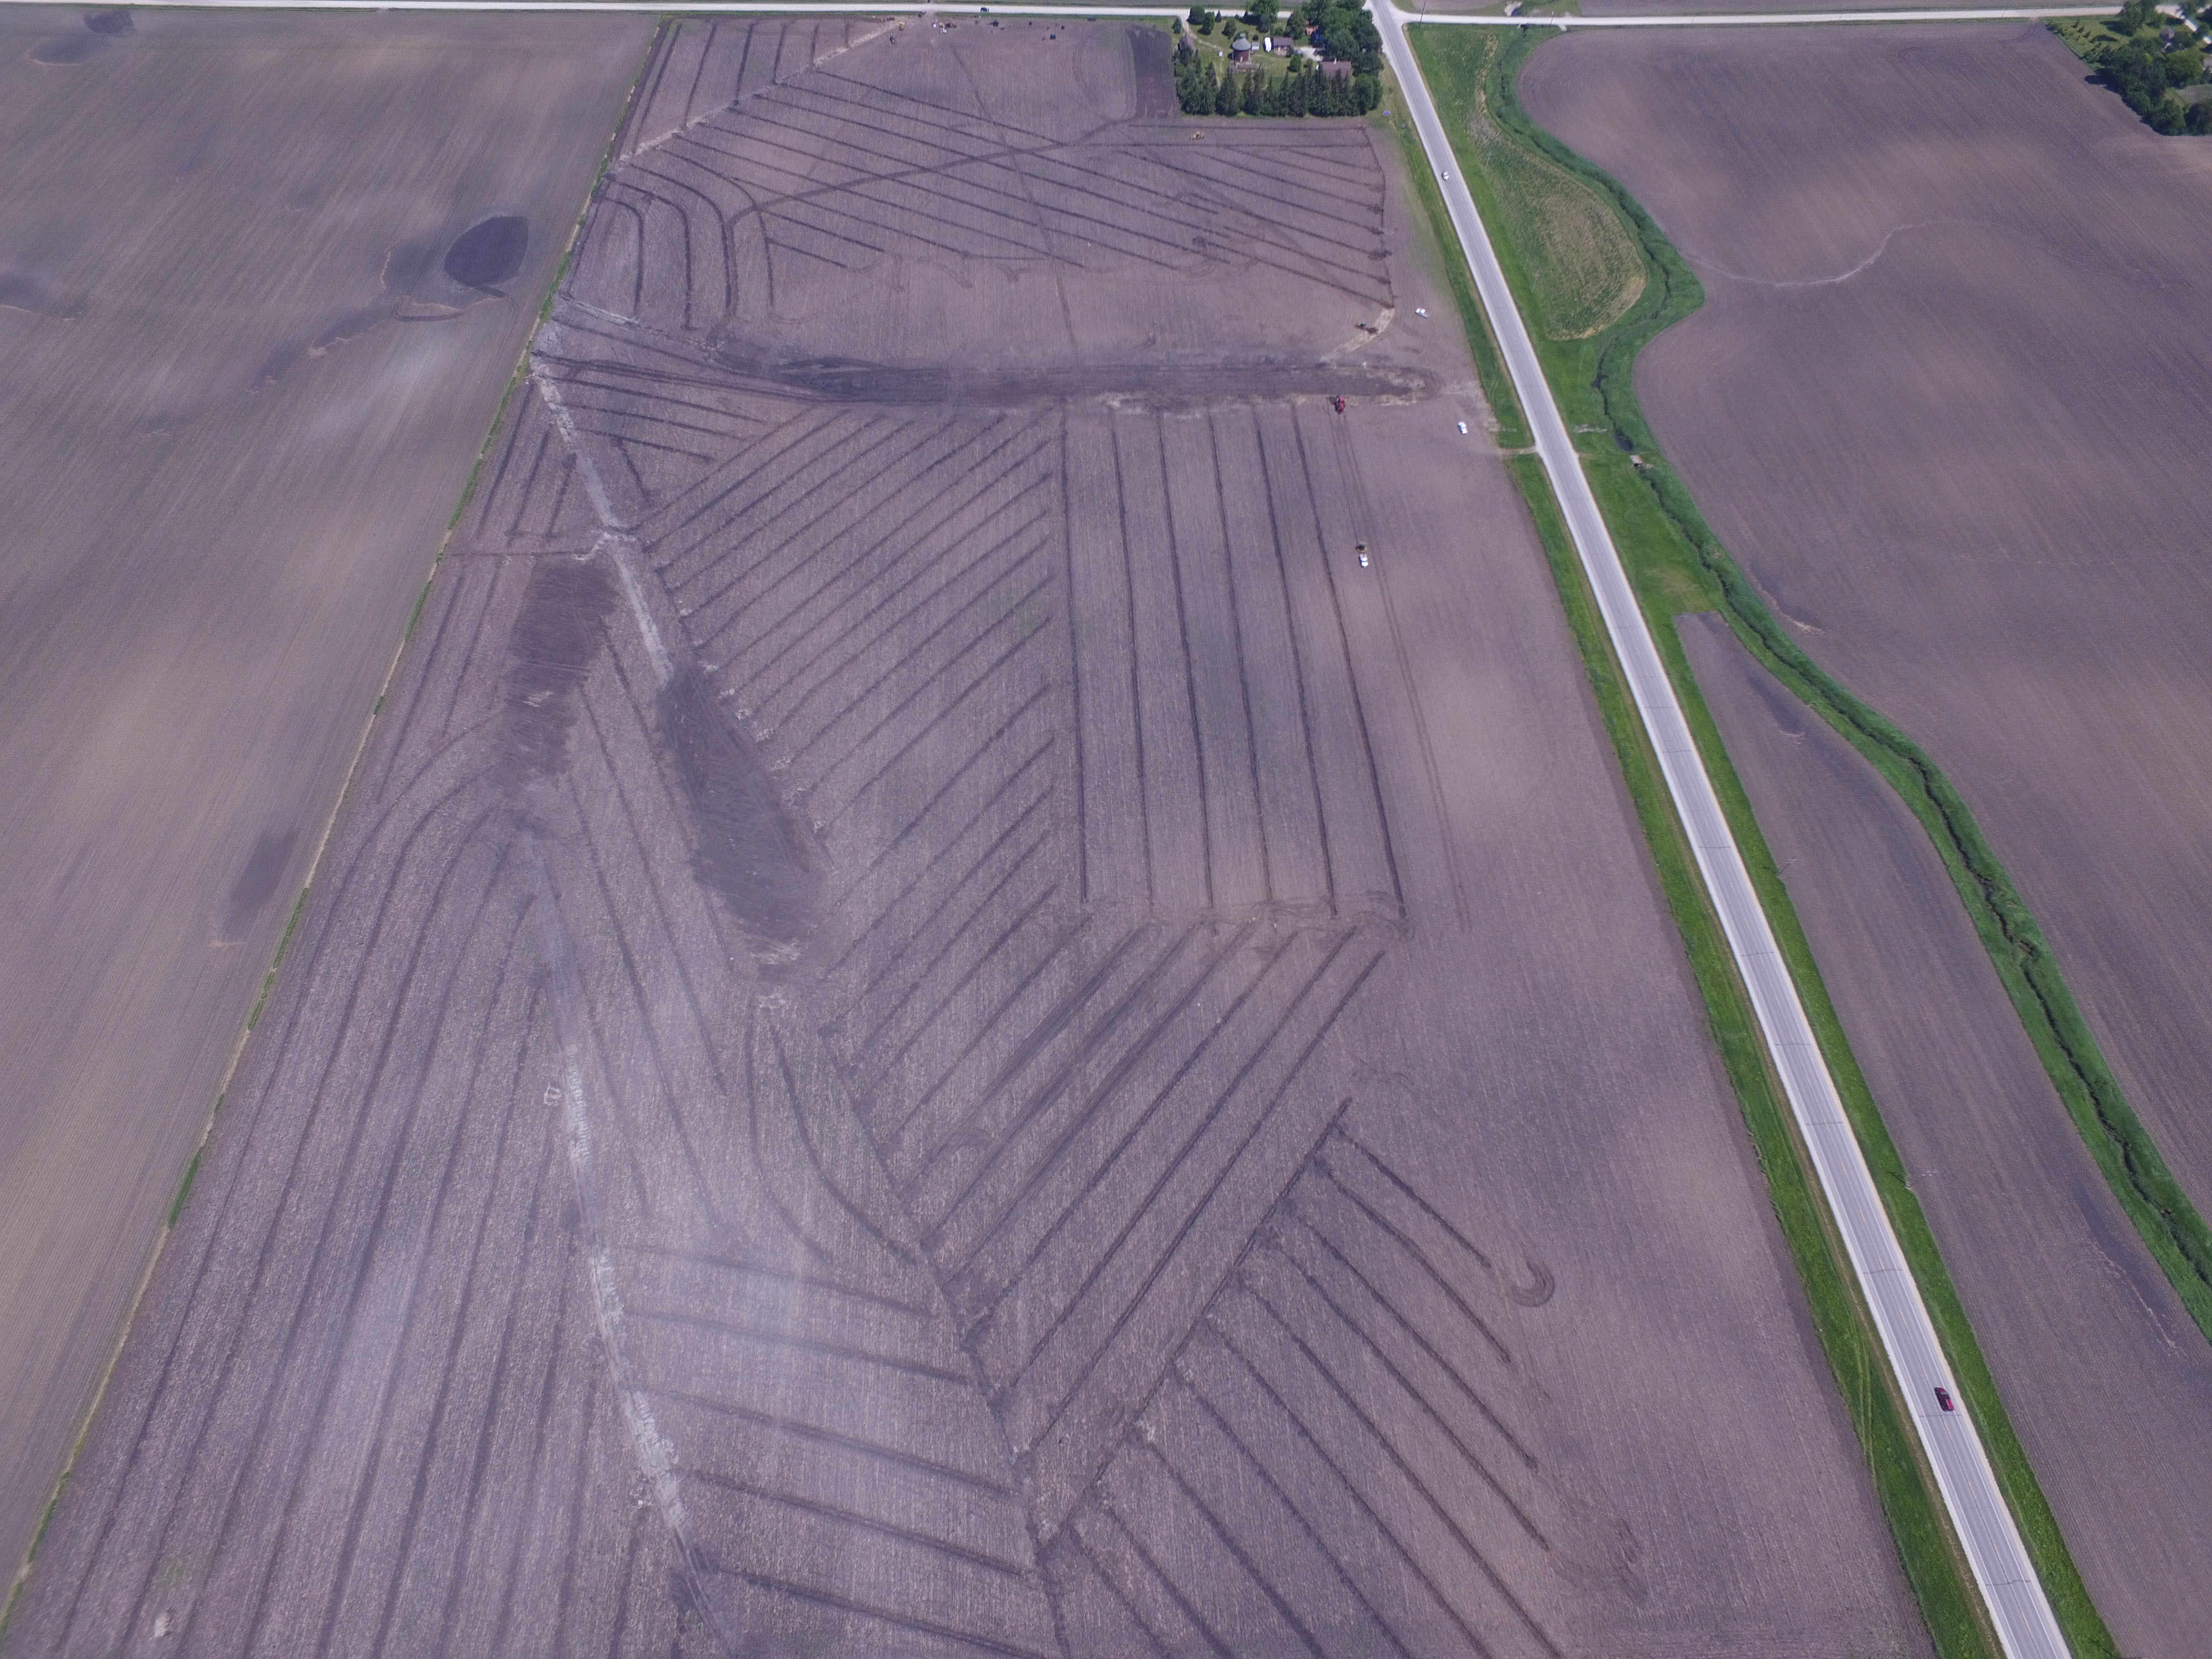 This photo shows the amount of drainage infrastructure that might exist under a typical farm field. Drainage keeps soils dry enough for farmers to cultivate crops in soil that might be too wet otherwise. Image courtesy of Michael Castellano.